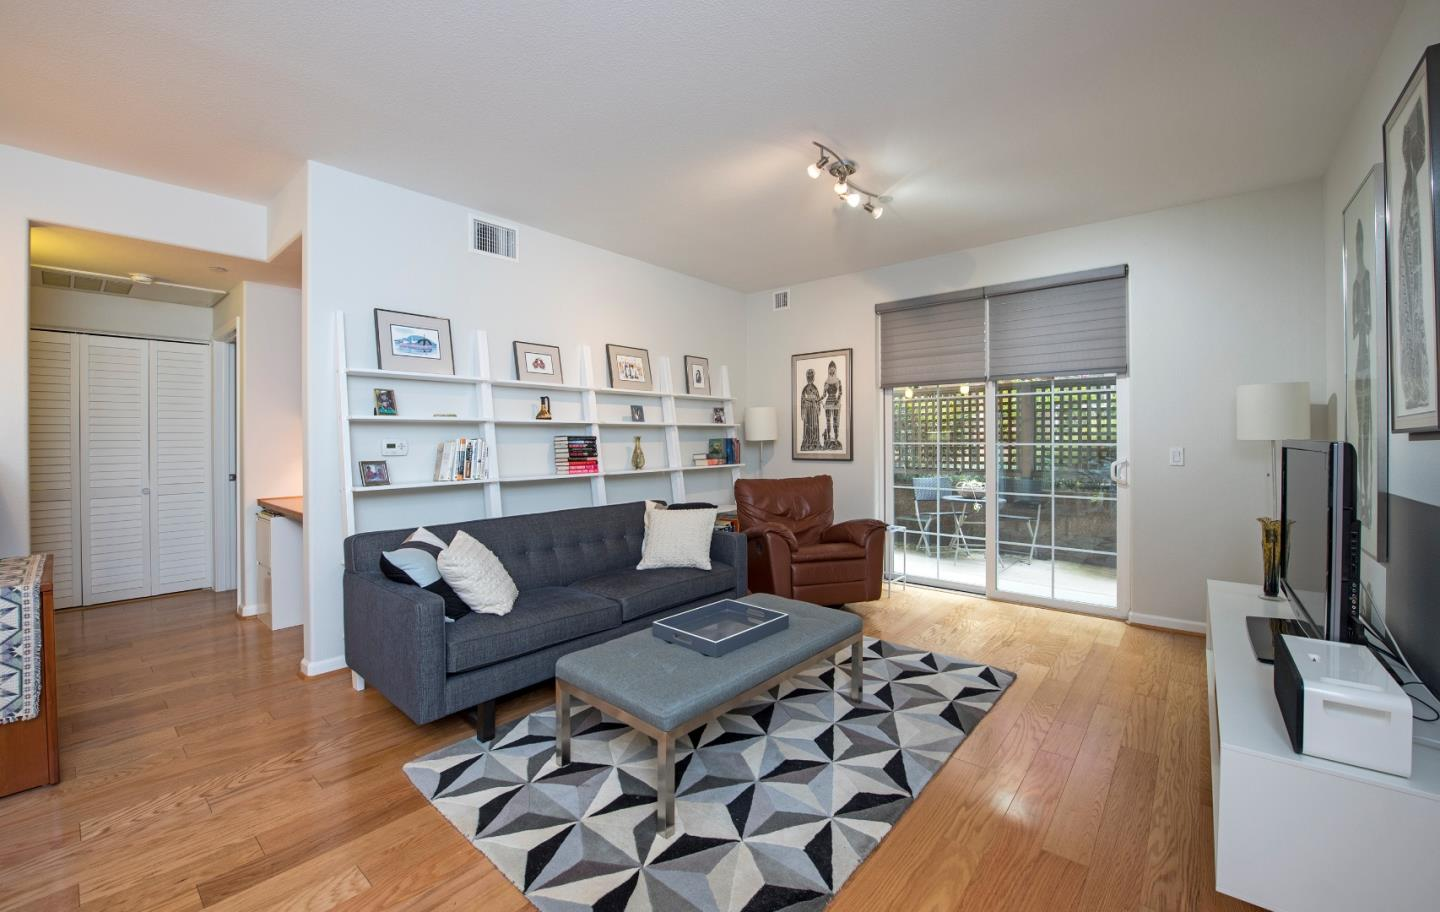 Built in 2009 and located off the inner courtyard of the complex, this light and bright 2 bedroom 2 bath ground level luxury condo provides a peaceful and private setting along with building amenities including pool/spa, gated lobby access, 2 secure underground parking spots, children's play area and storage. Gourmet kitchen with granite counter tops, stainless steel appliances, breakfast bar, open living room with automatic shades, patio, air conditioning and office area.  The spacious master suite provides dual sinks, oversized tub and large walk in close. There is additional street parking on Los Altos Ave with secure access to the complex. The complex is conveniently located next to bus routes (includes one to Stanford), tech company bus route adjacent, commute routes, schools and shopping.  Outstanding Los Altos Schools round out this fantastic opportunity.